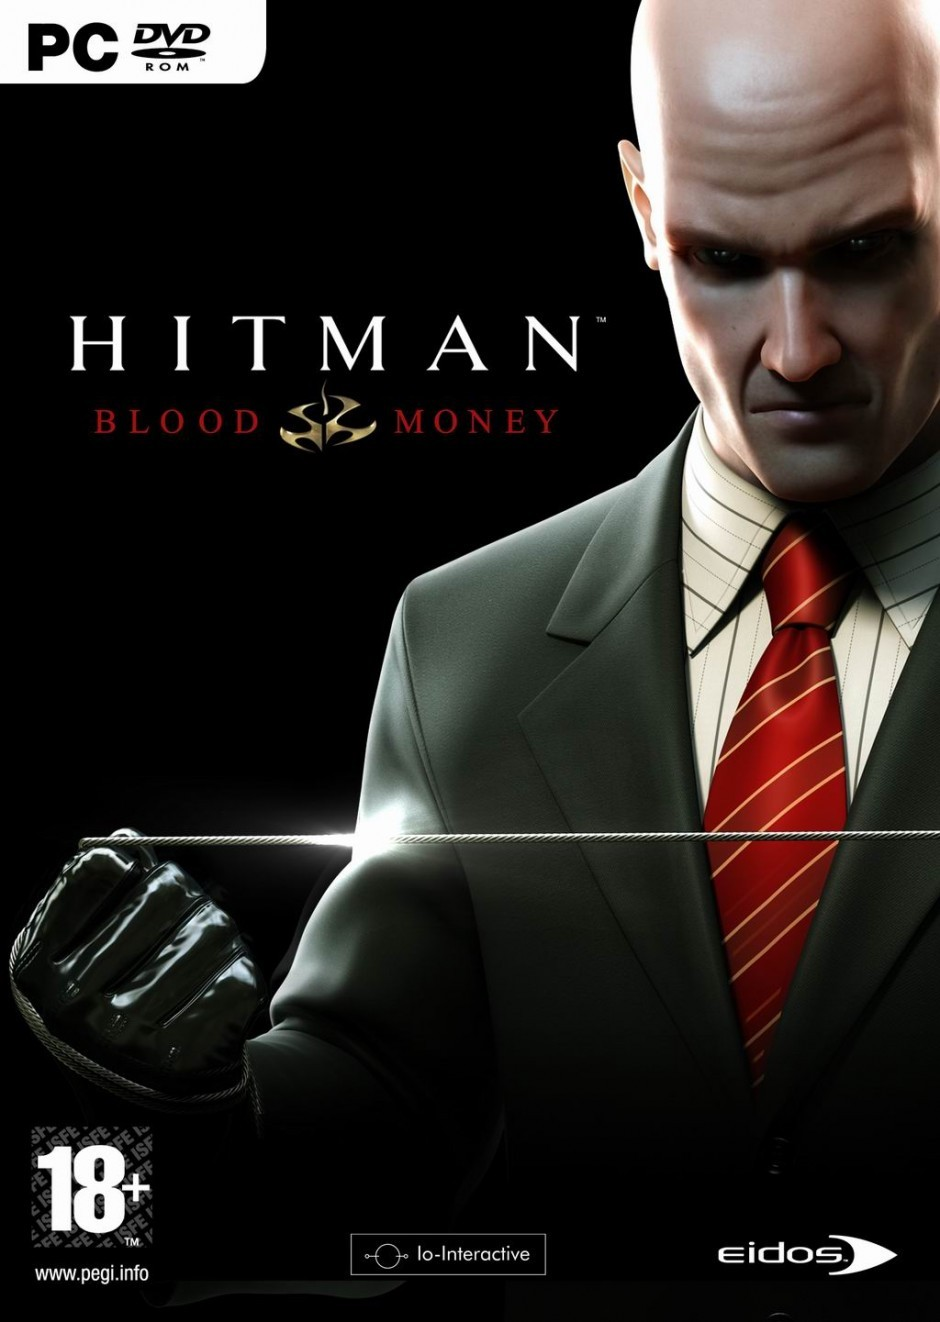 blood money The shaun method - hitman: blood money live stream shaun mcinnis reprises his role in today's live stream as (a real jerky) agent 47 in hitman: blood money.